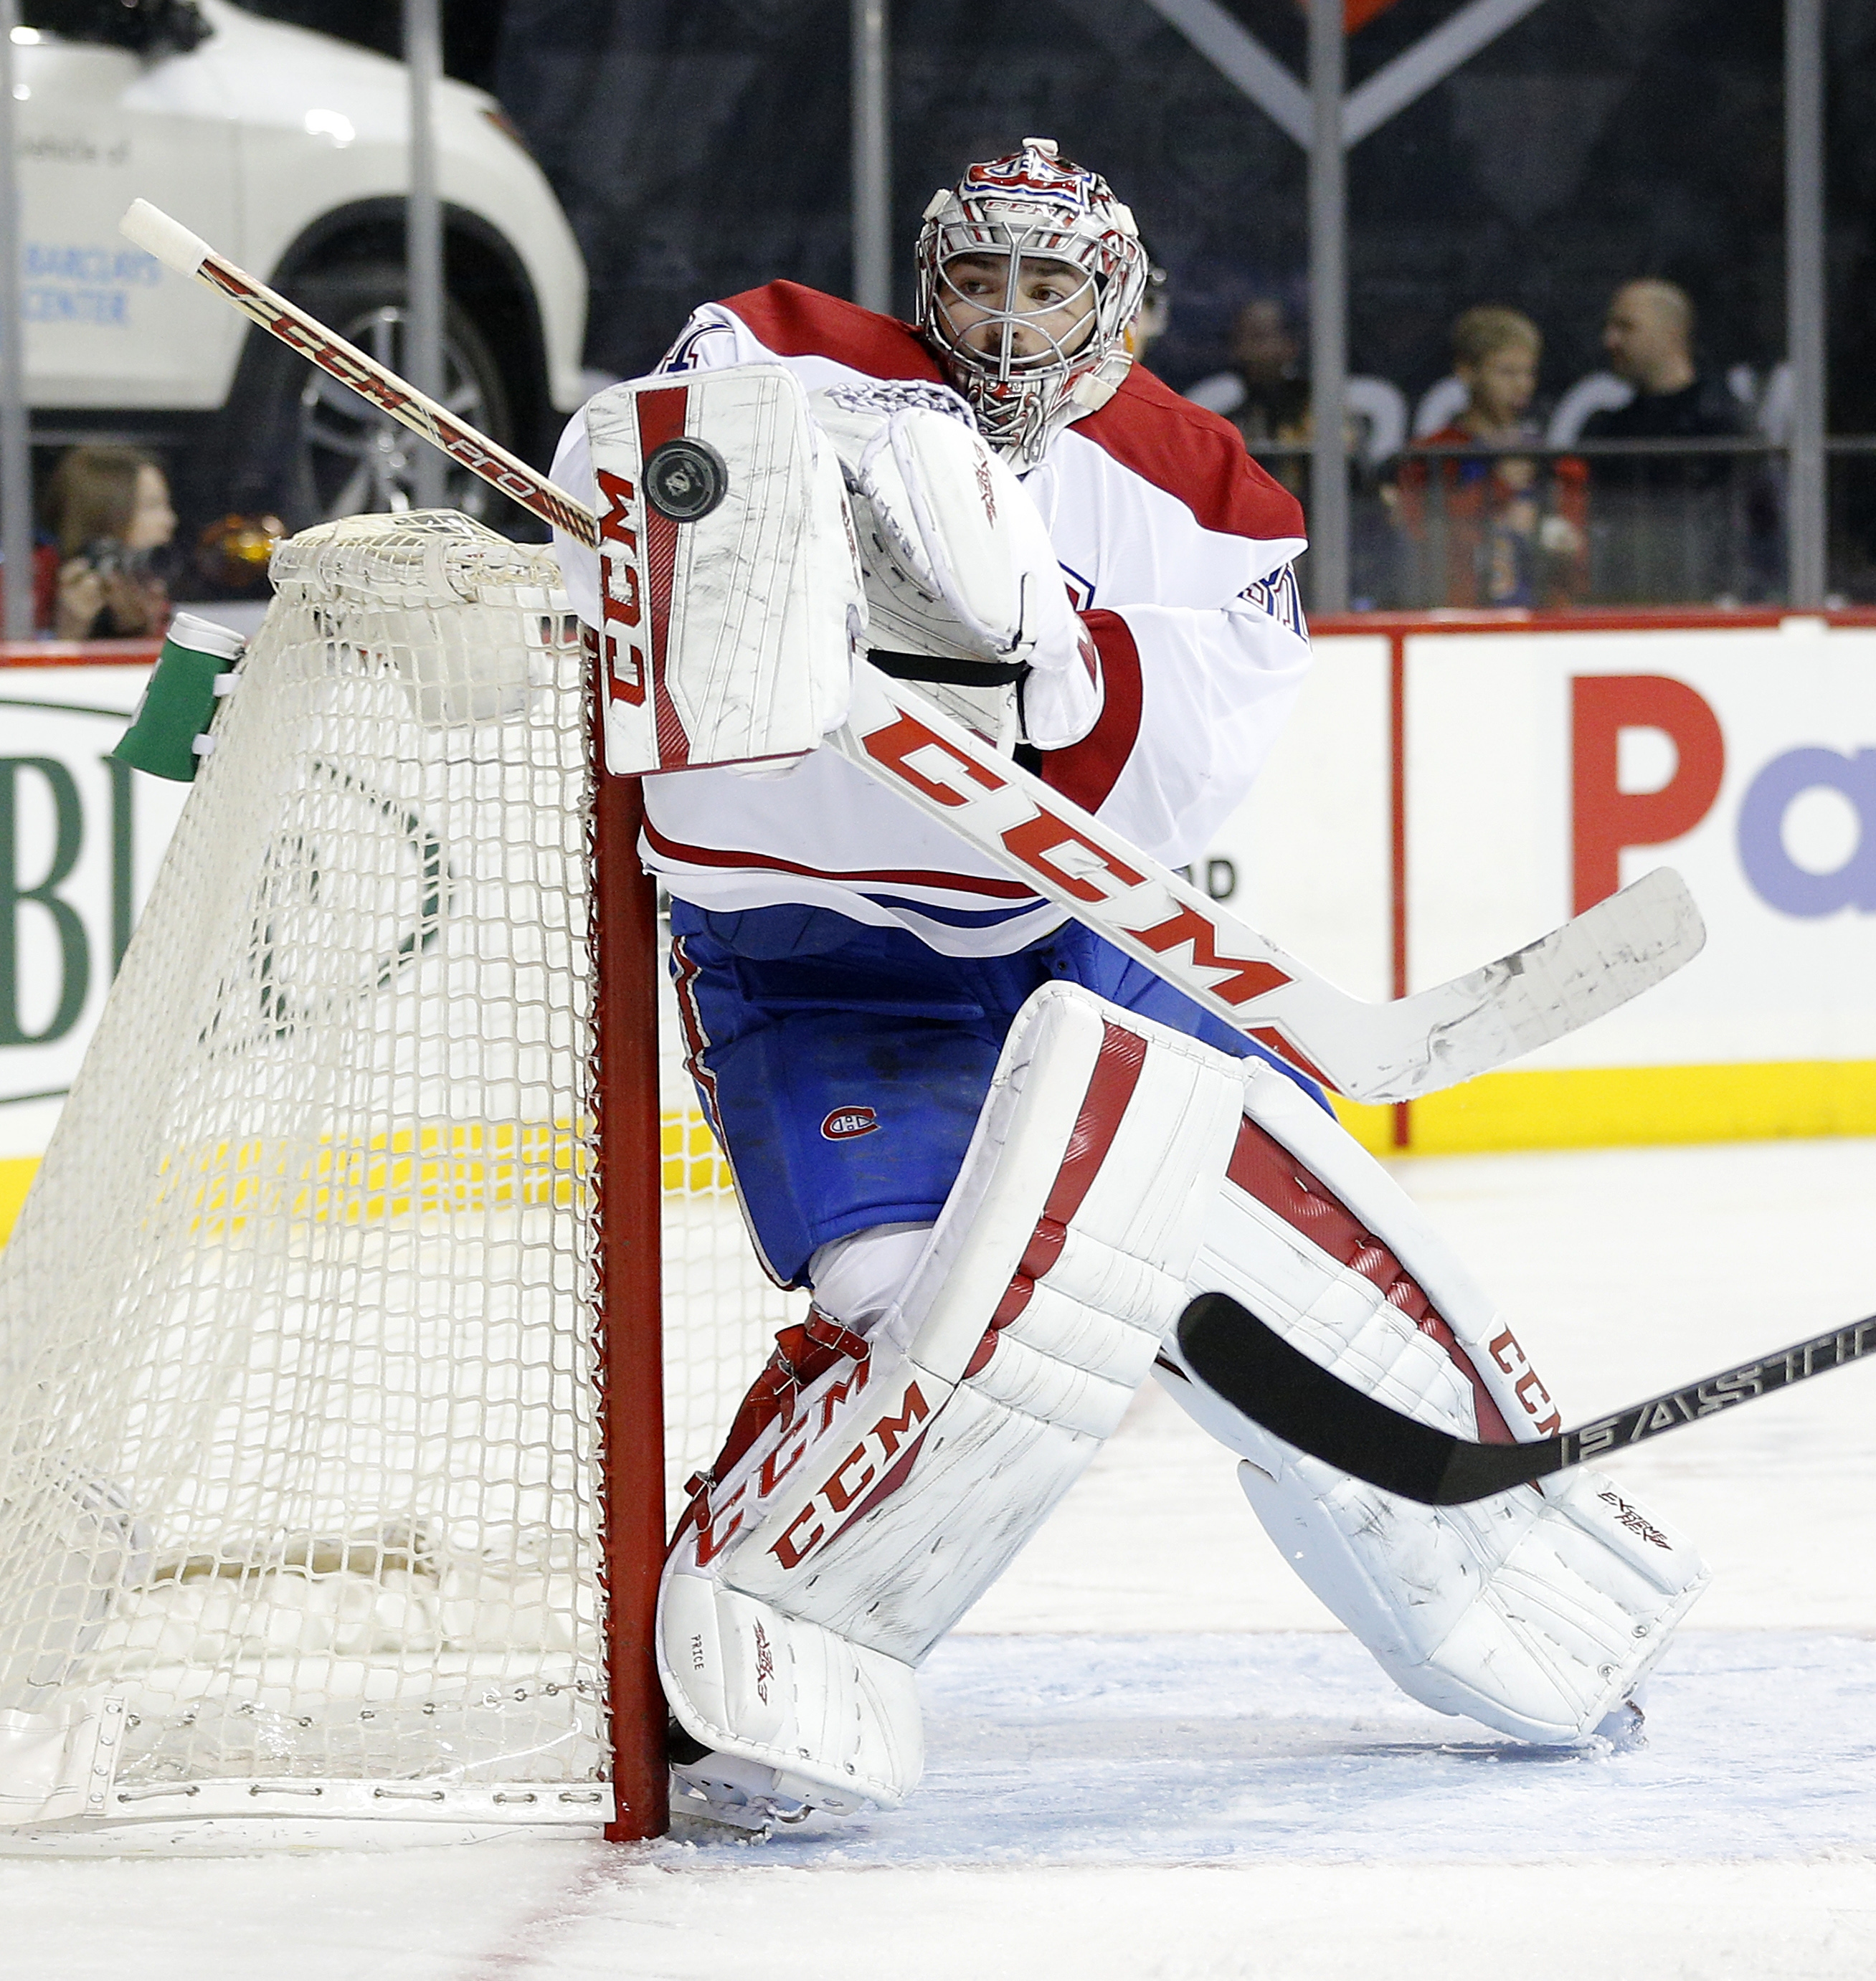 Montreal Canadiens goalie Carey Price stops a shot during the second period of an NHL hockey game against the New York Islanders on Friday, Nov. 20, 2015, in New York  (AP Photo/Paul Bereswill)